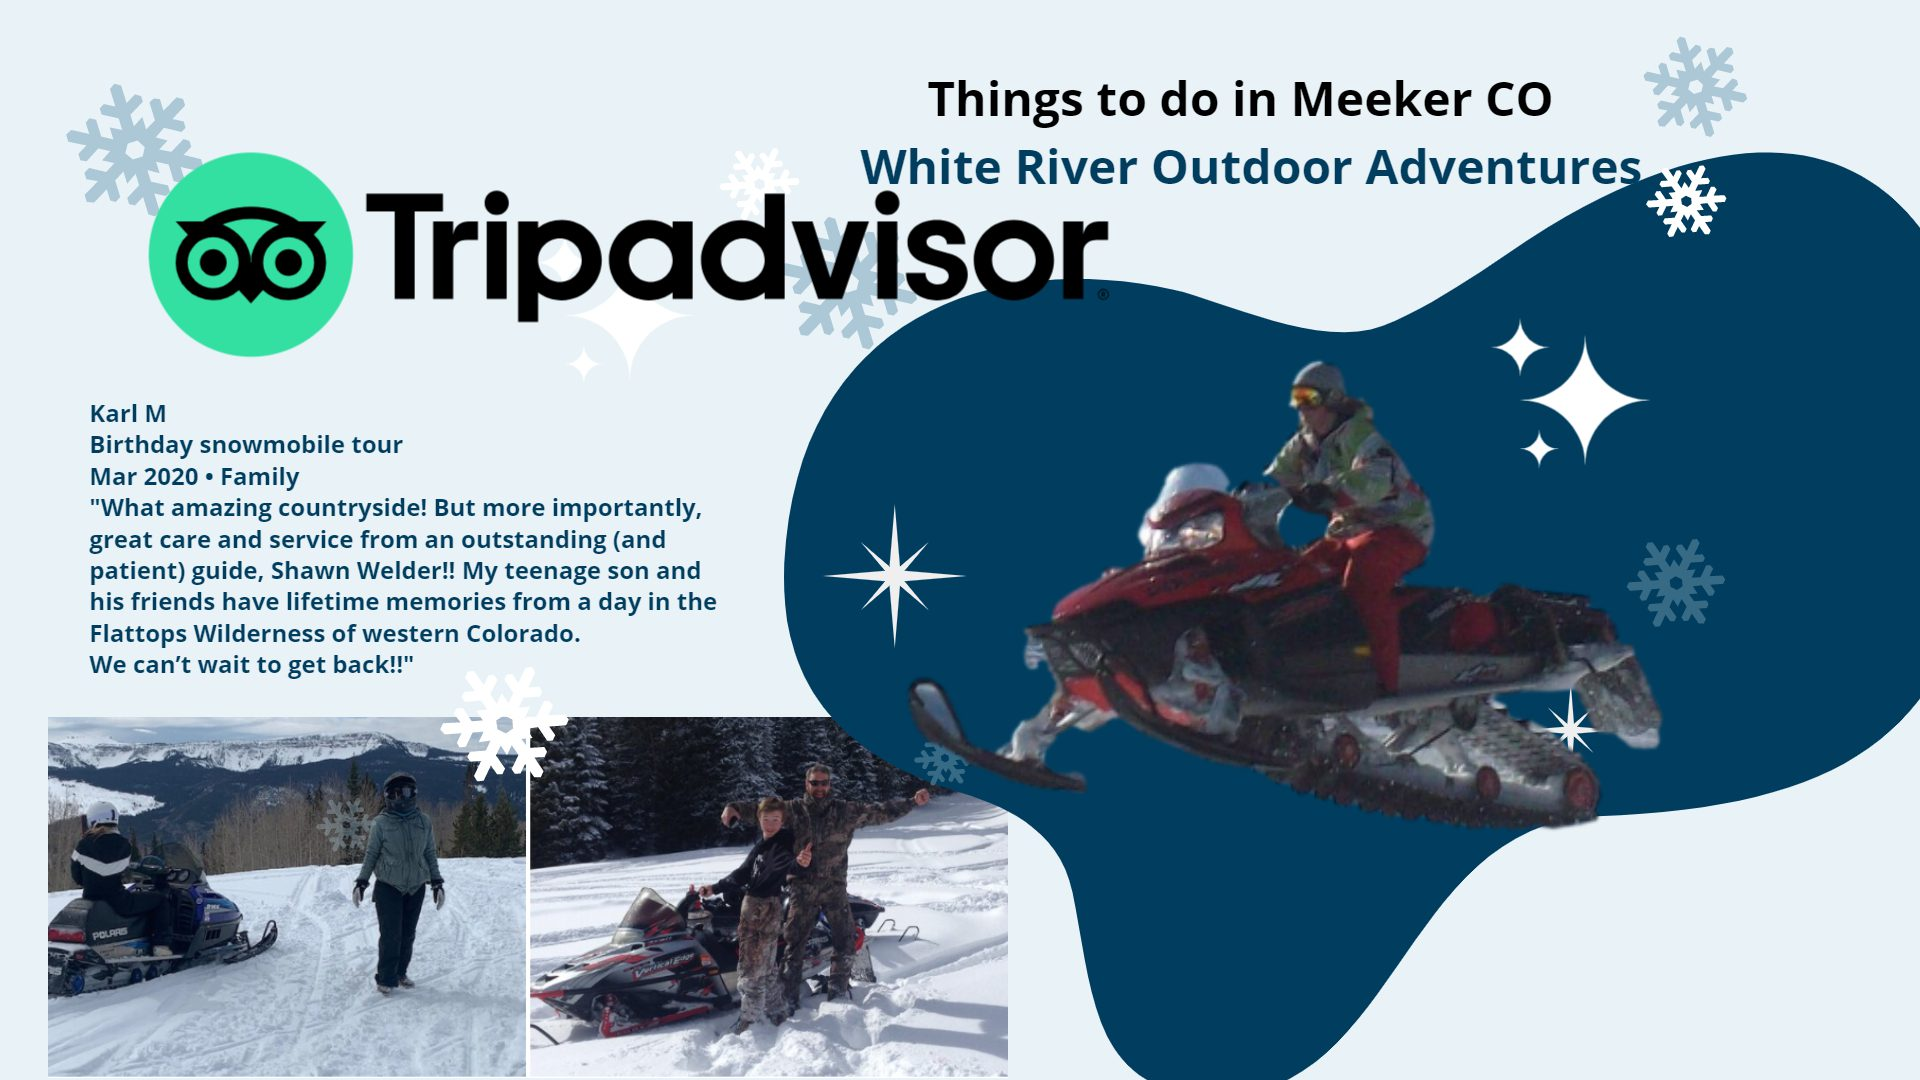 White River Outdoor Adventures Things to Do in Meeker